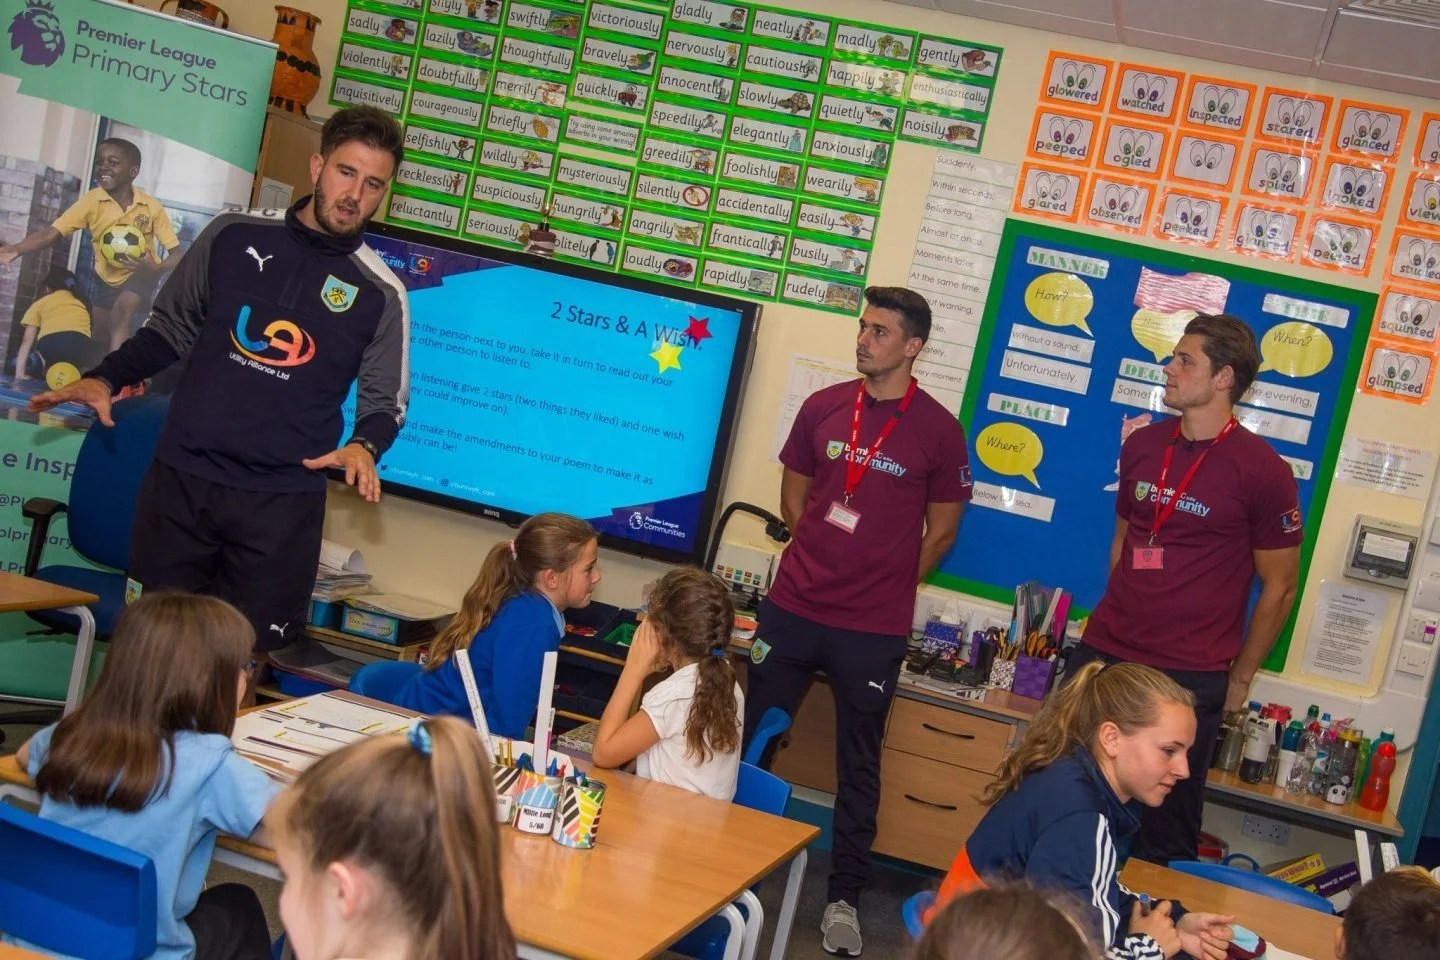 Tarkowski & Lowton -Premier League Writing Stars, A Poetry Competition for Children www.extraordinarychaos.com